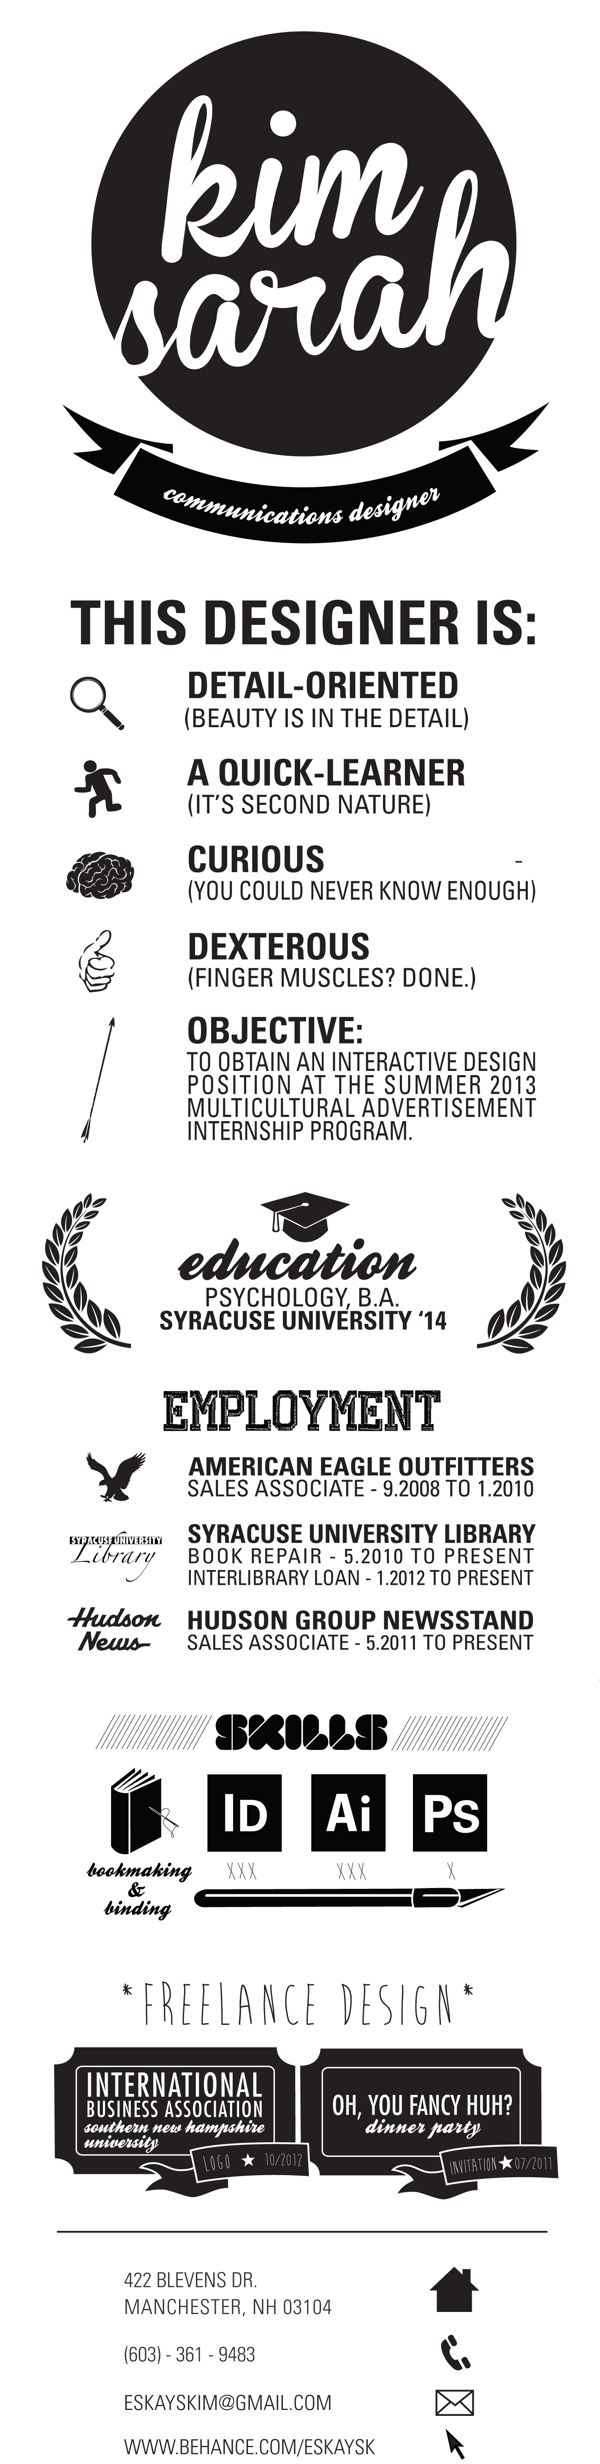 Picnictoimpeachus  Marvelous  Ideas About Infographic Resume On Pinterest  My Portfolio  With Magnificent  Ideas About Infographic Resume On Pinterest  My Portfolio Resume And Resume Design With Cool Physician Assistant Resume Sample Also Special Skills To Put On A Resume In Addition Nurse Aide Resume And Marketing Consultant Resume As Well As Objective Statement In Resume Additionally Banking Resume Samples From Pinterestcom With Picnictoimpeachus  Magnificent  Ideas About Infographic Resume On Pinterest  My Portfolio  With Cool  Ideas About Infographic Resume On Pinterest  My Portfolio Resume And Resume Design And Marvelous Physician Assistant Resume Sample Also Special Skills To Put On A Resume In Addition Nurse Aide Resume From Pinterestcom